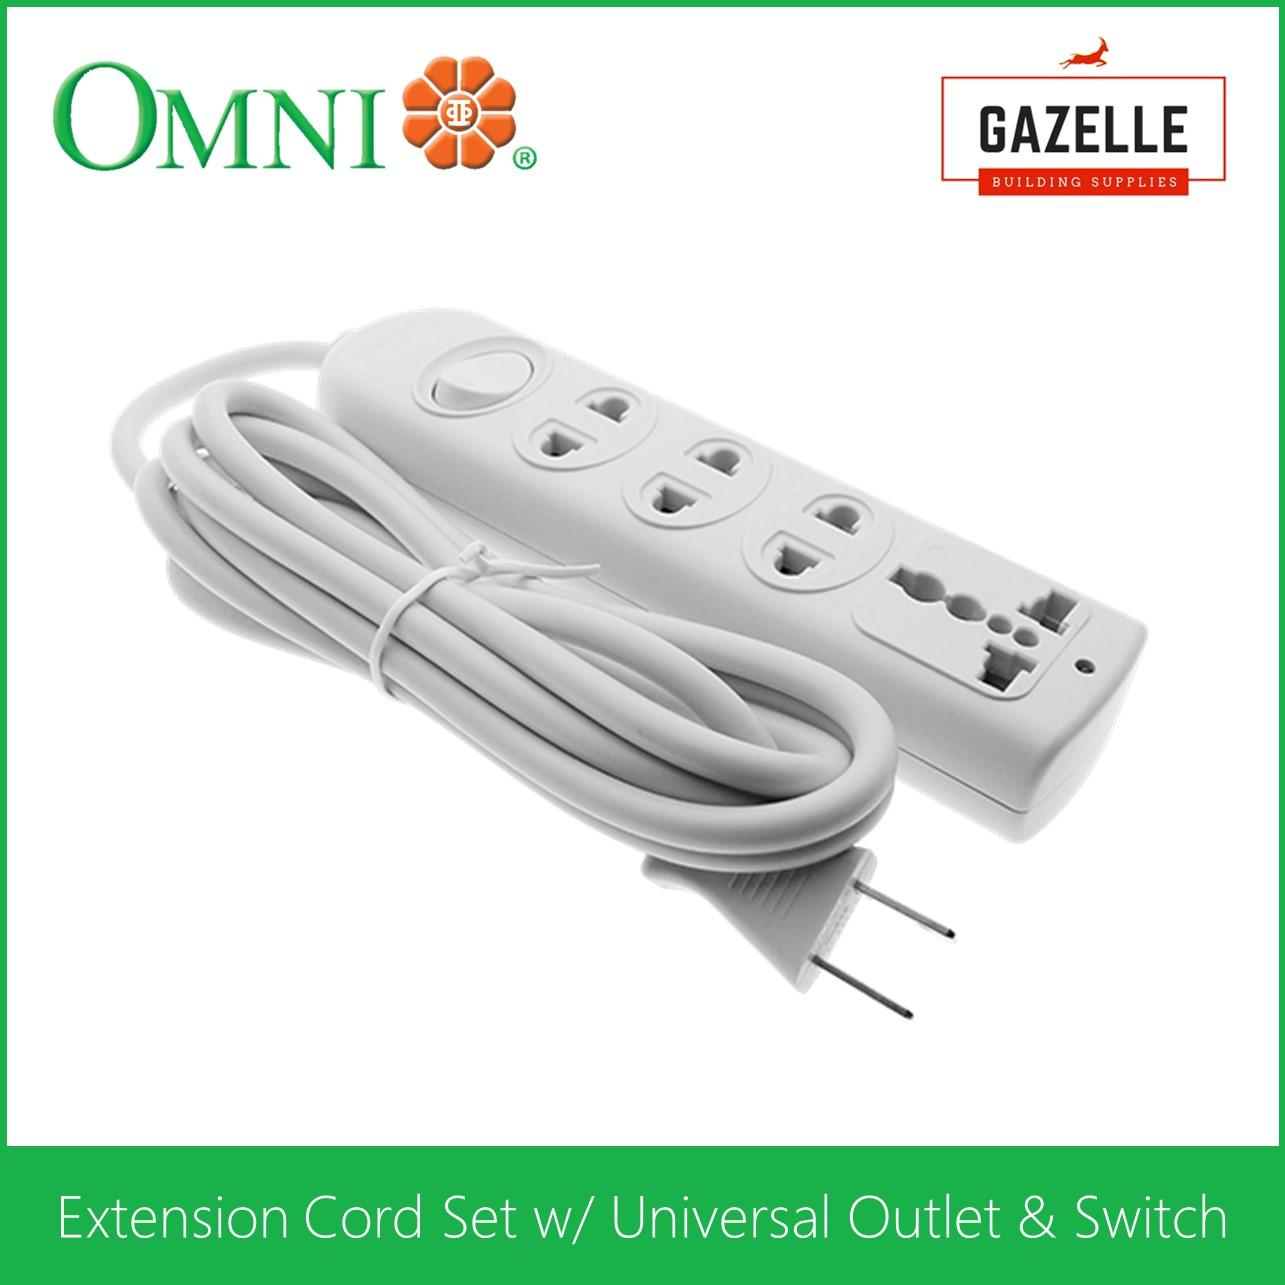 hight resolution of omni extension cord set w universal outlet and switch 1 83 meter wire wer